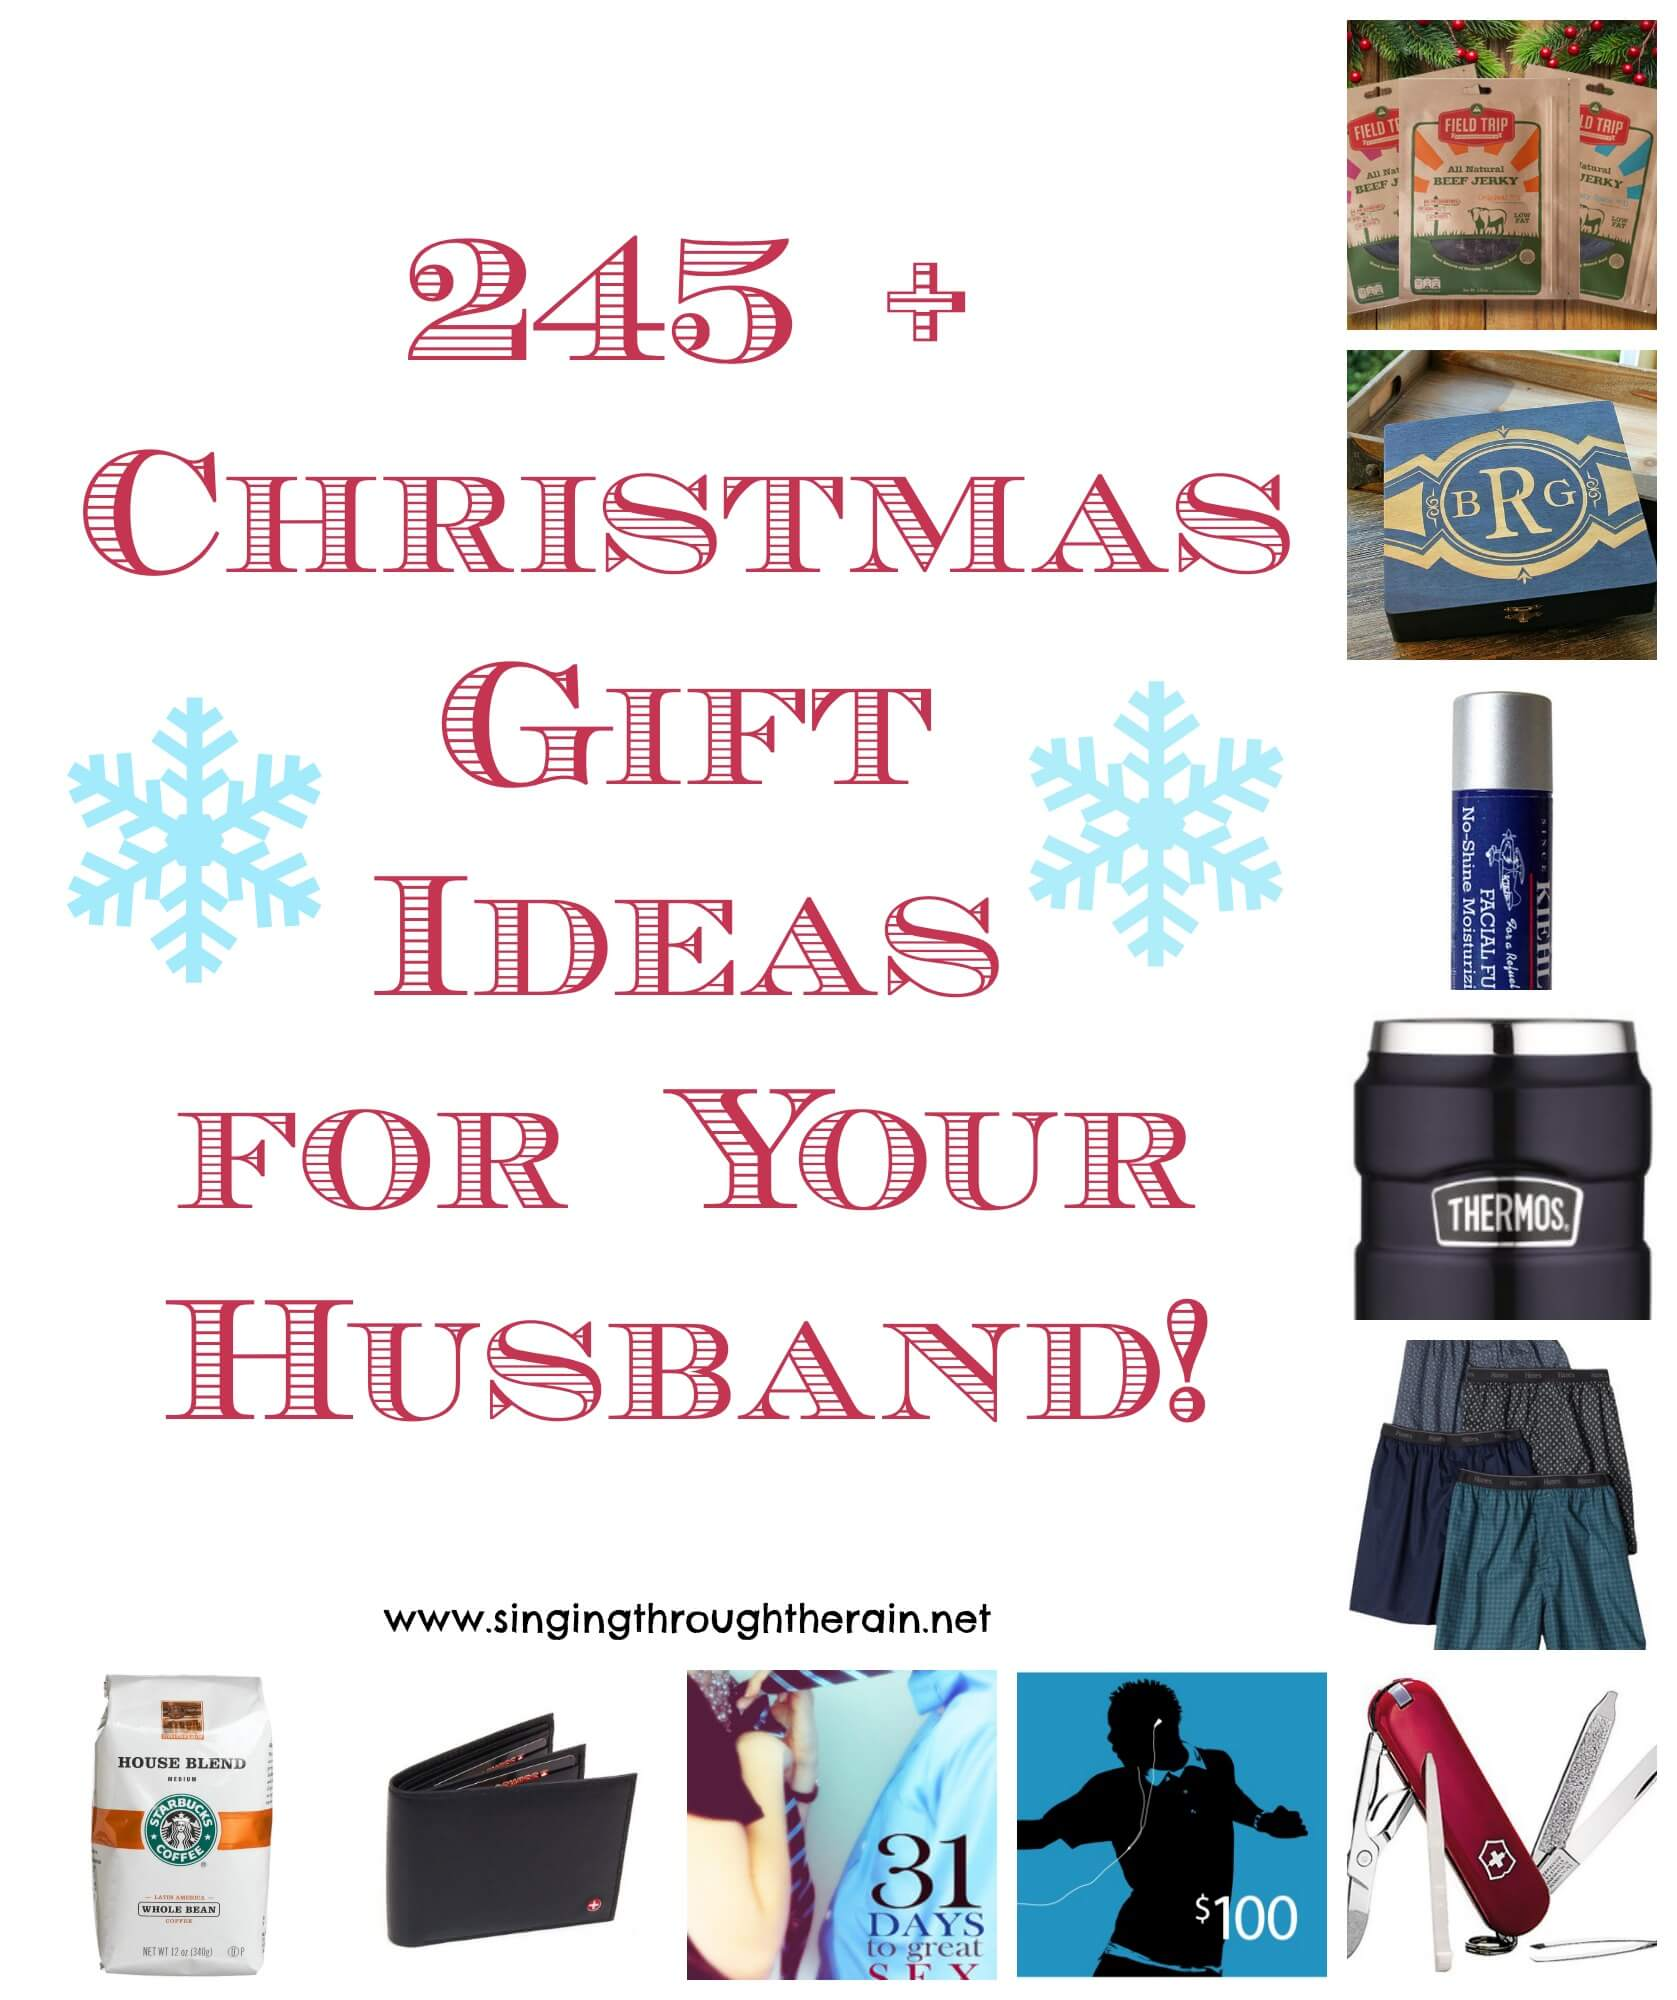 Christmas gift ideas for your husband